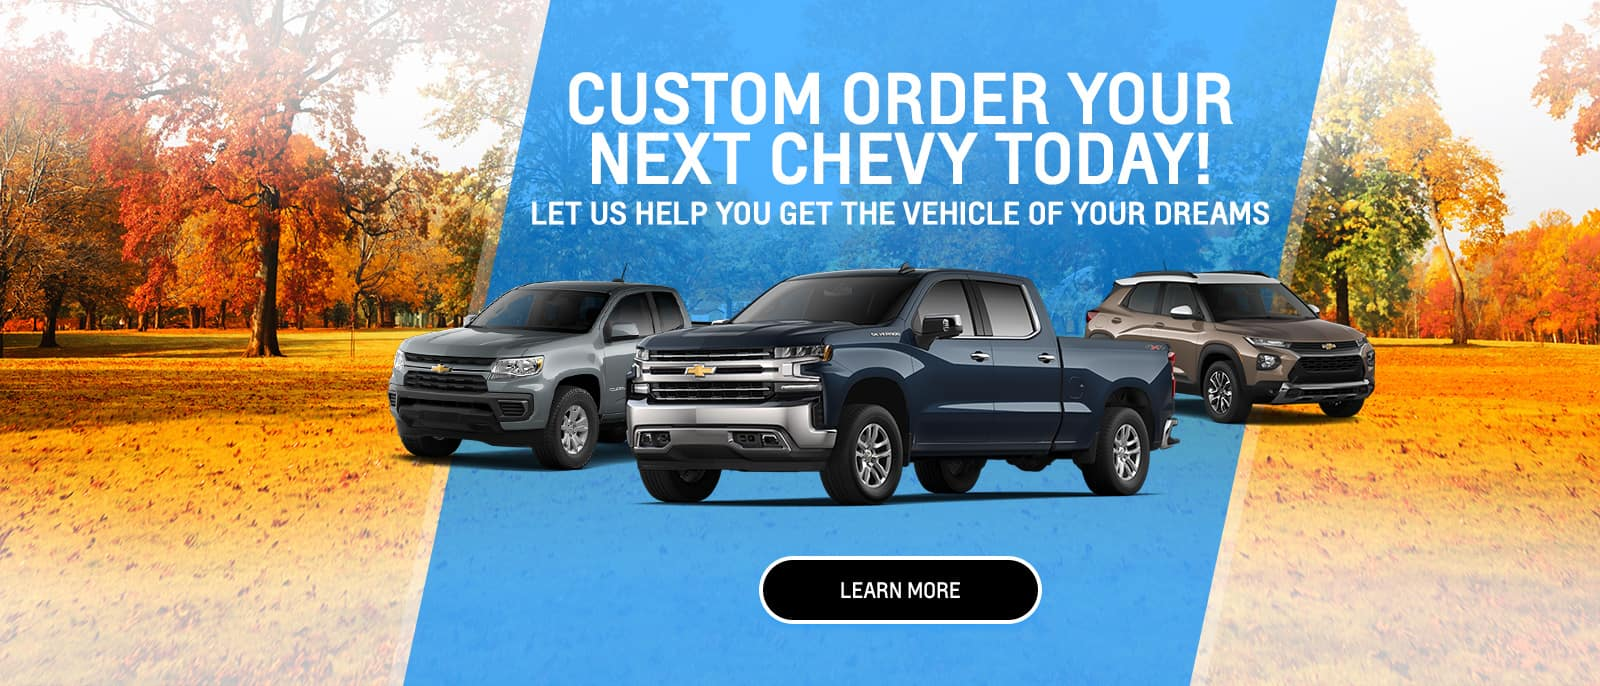 Custom Order Your Next Chevy Today!